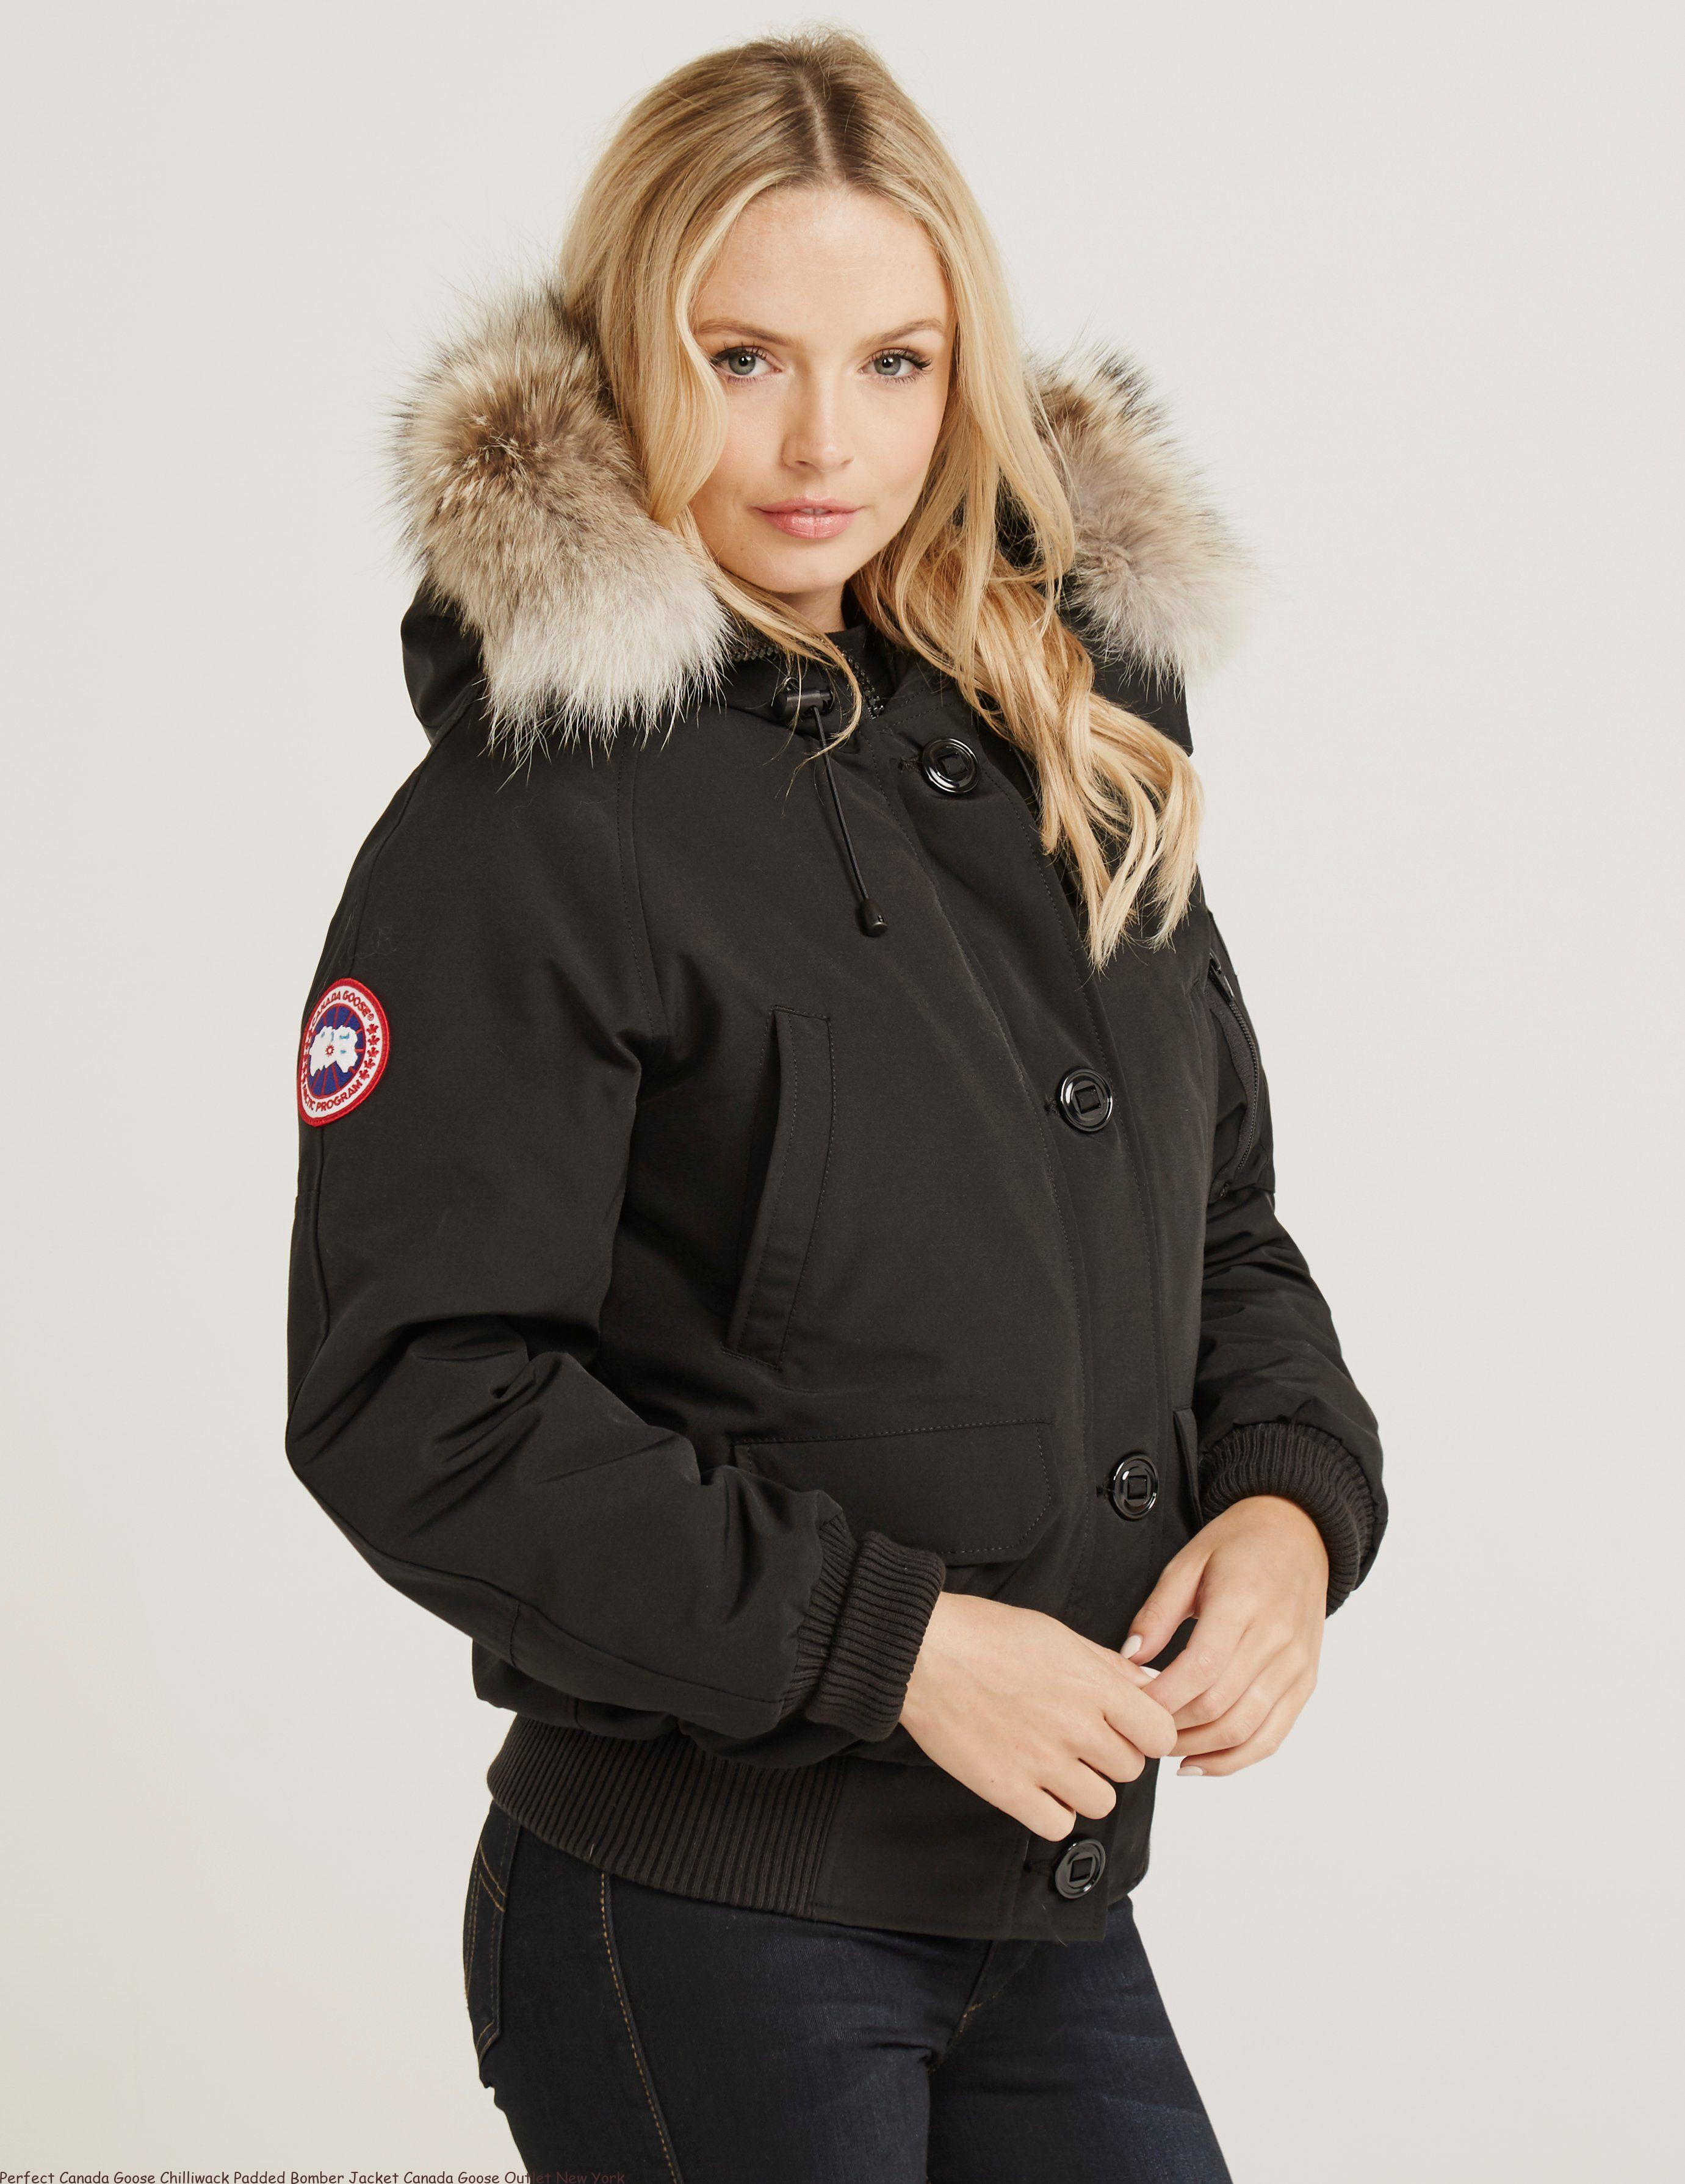 Perfect Canada Goose Chilliwack Padded Bomber Jacket Canada Goose Outlet  New York – UK Canada Goose Outlet Sale – 209 Official Canada Goose Outlet  Black Friday